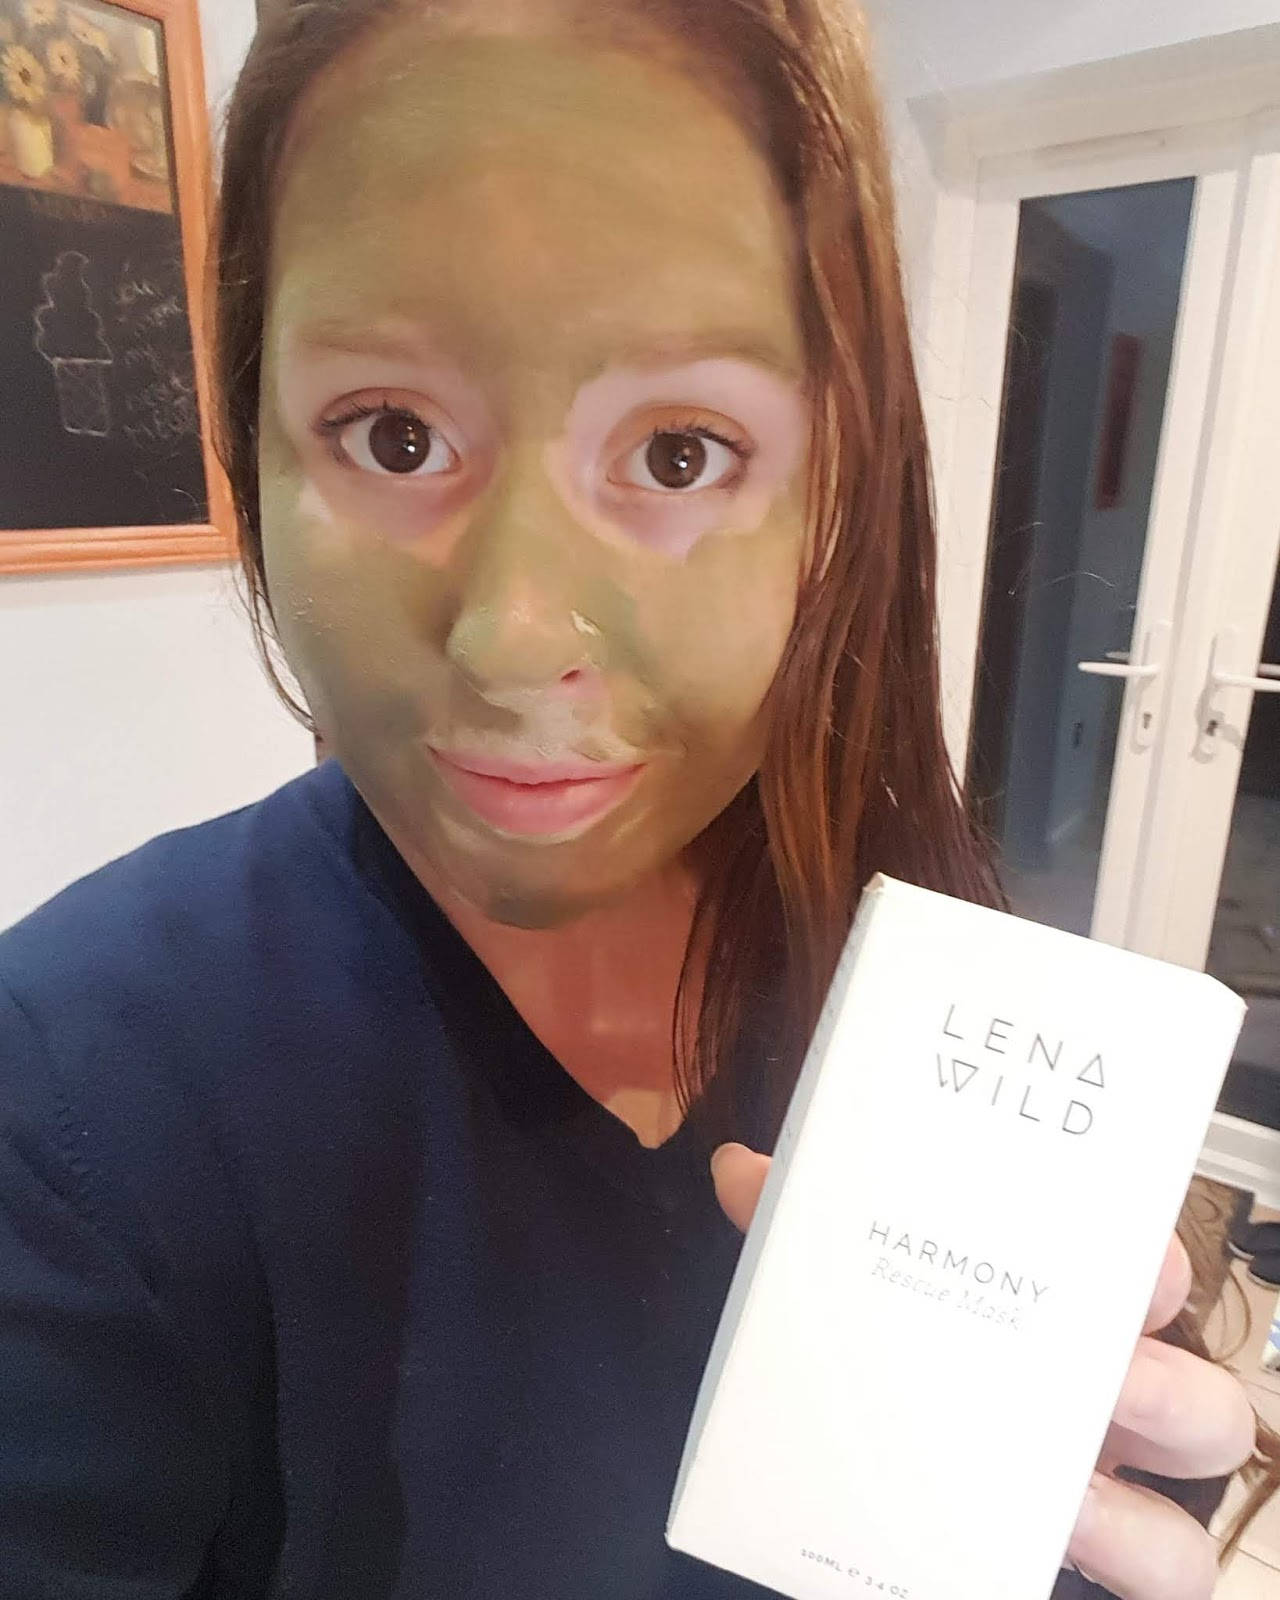 Lena Wild Harmony Rescue Mask (from Origins of Beauty) Review